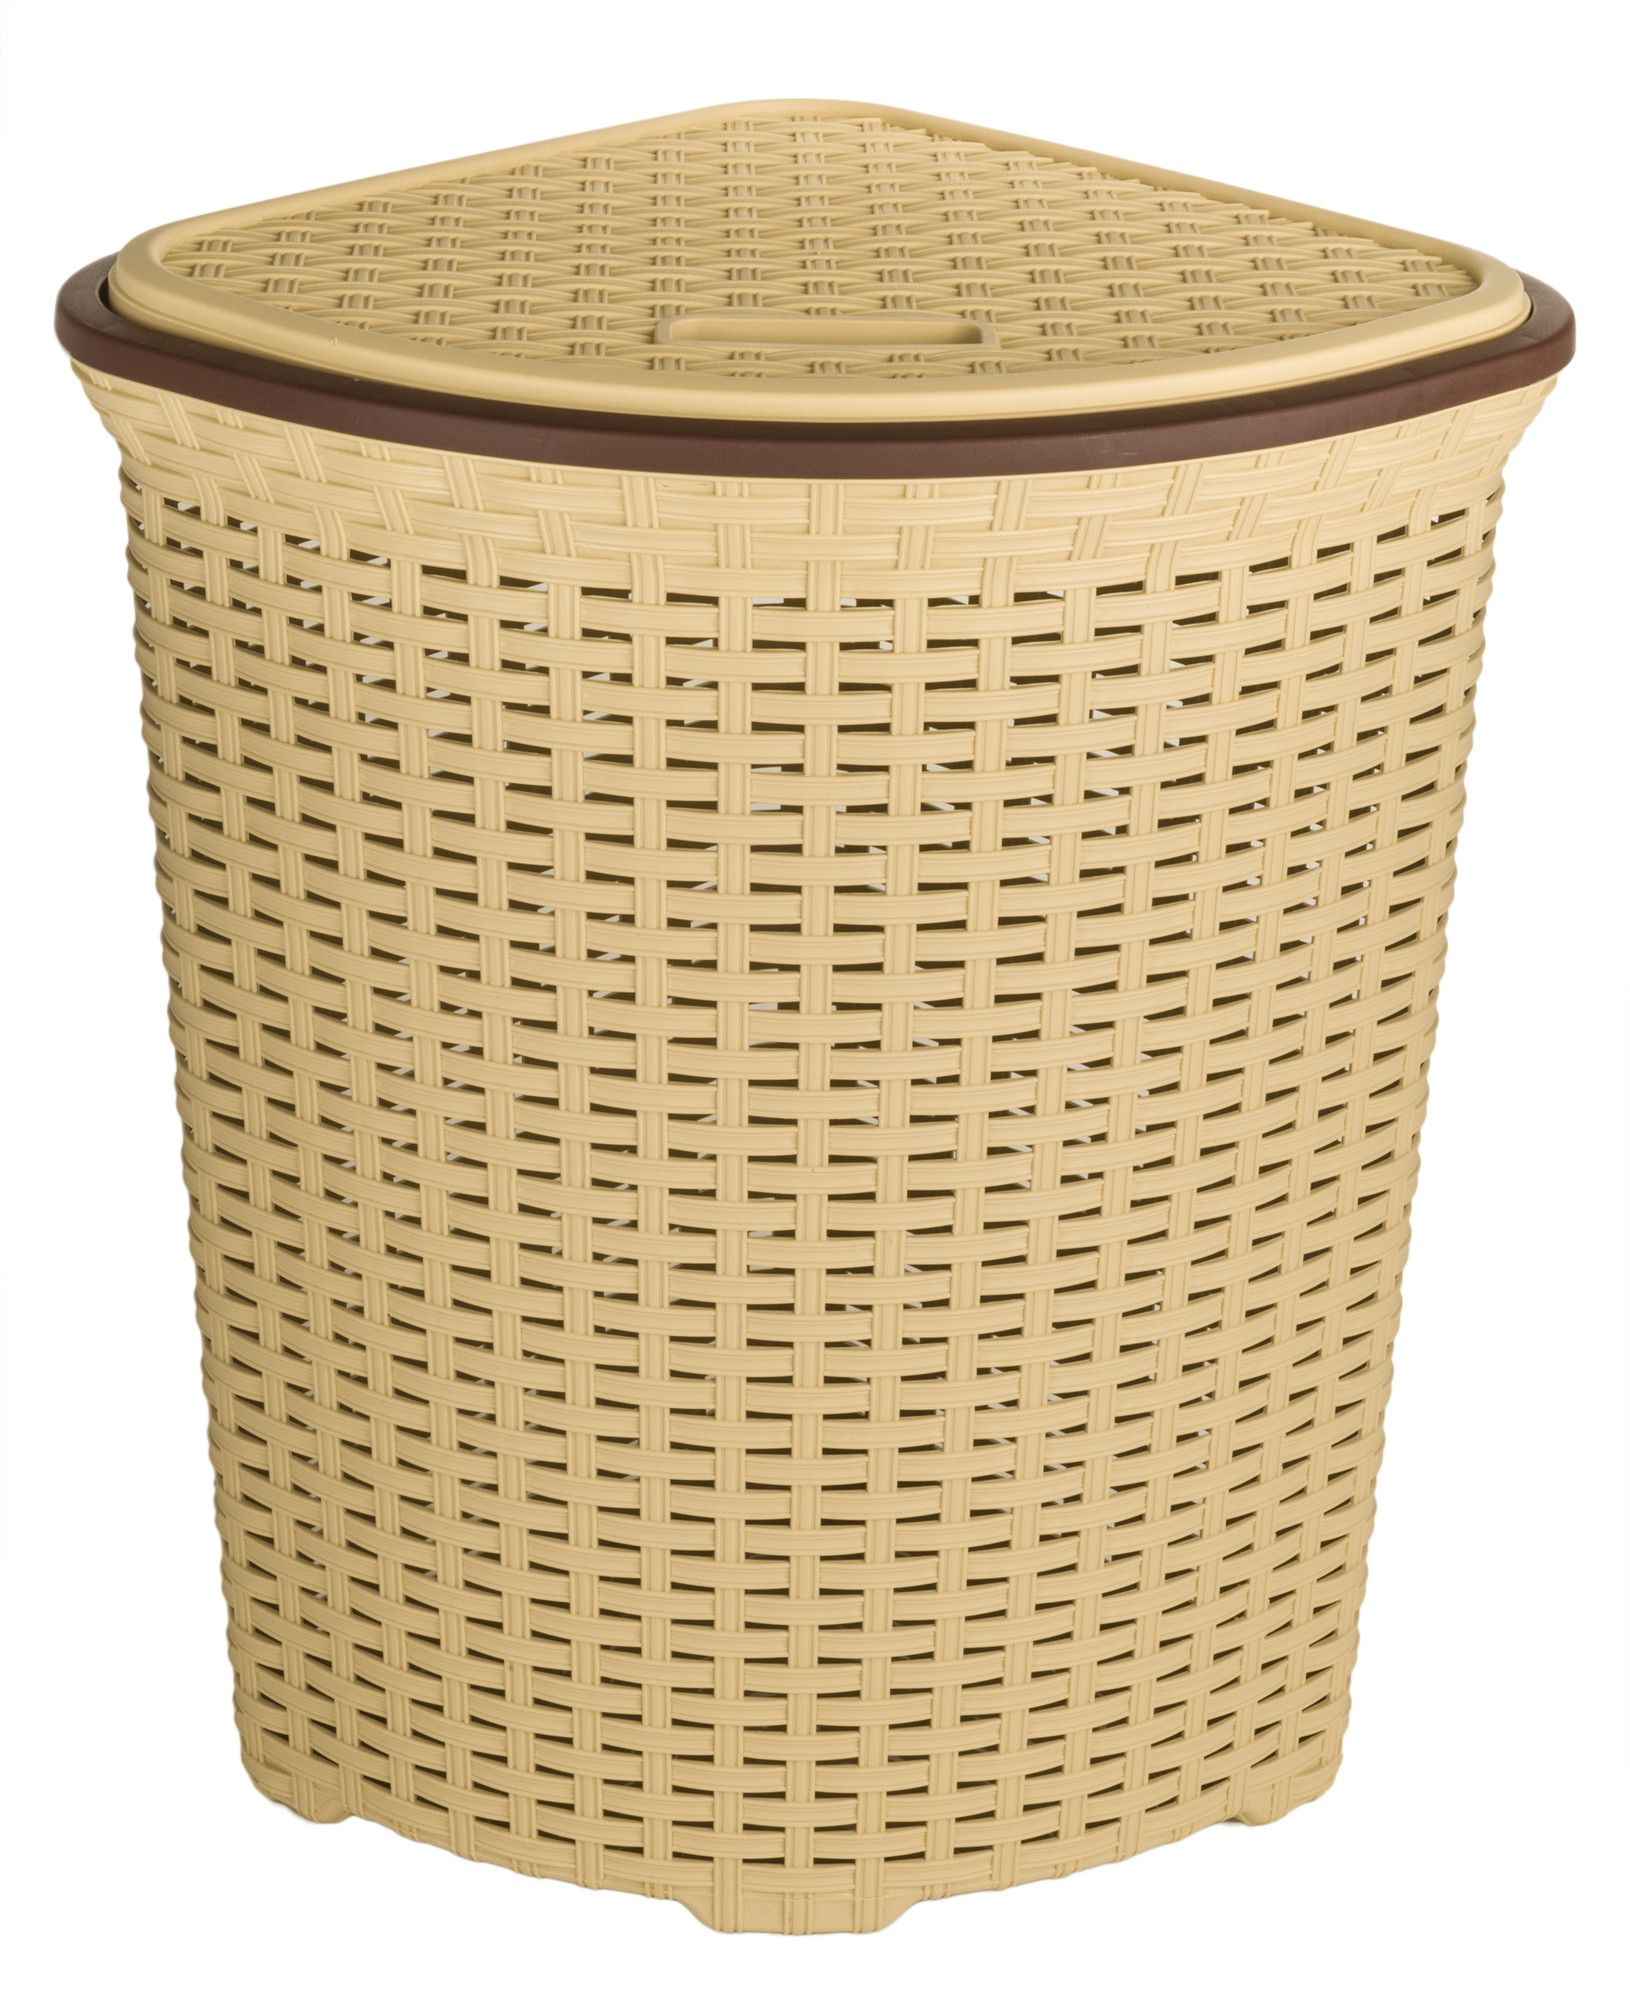 Simpson Corner Laundry Hamper Wicker Laundry Hamper Laundry